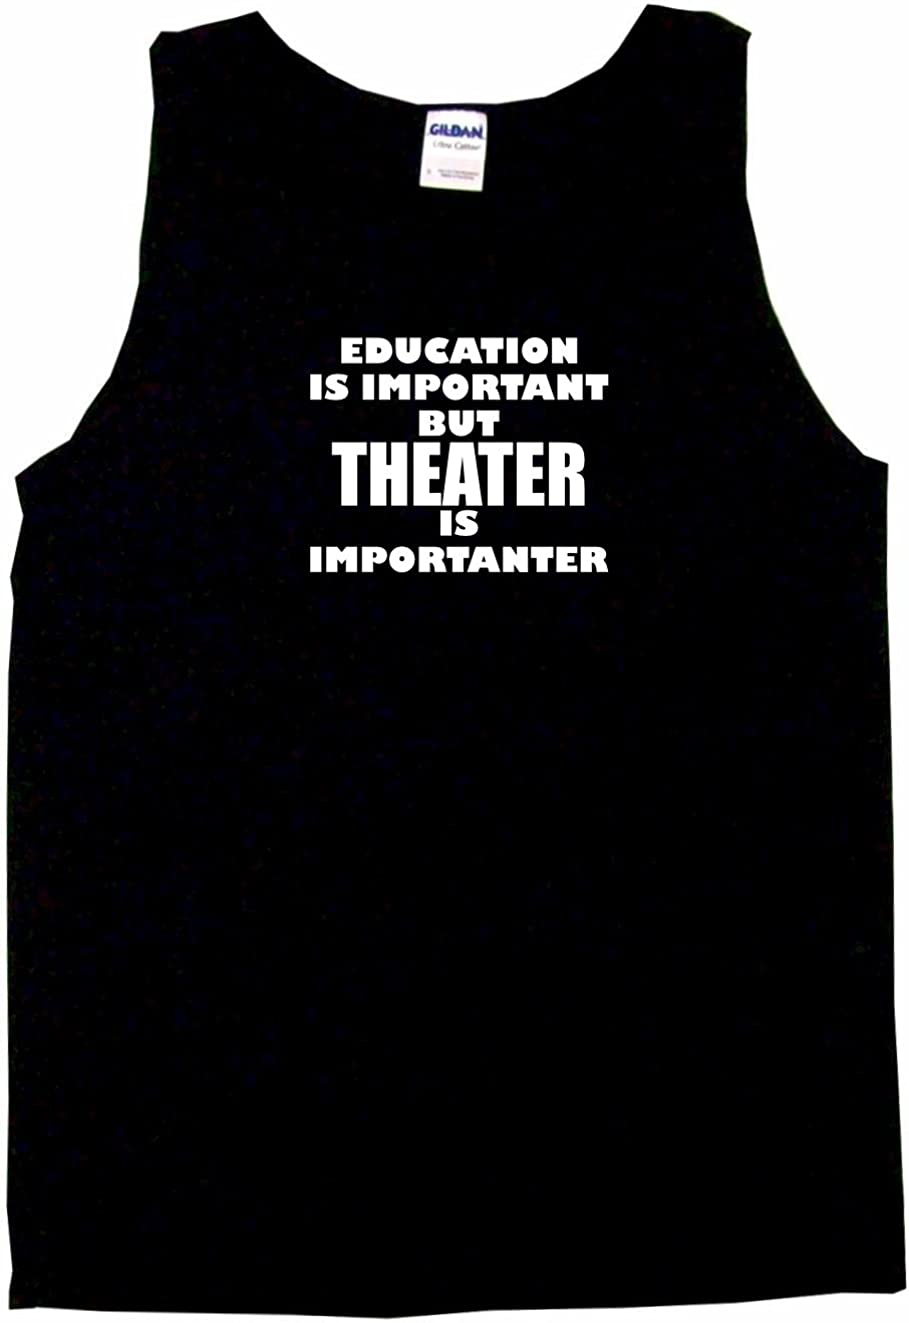 99 Volts Education is Important But Theater is Importanter Men's Tee Shirt